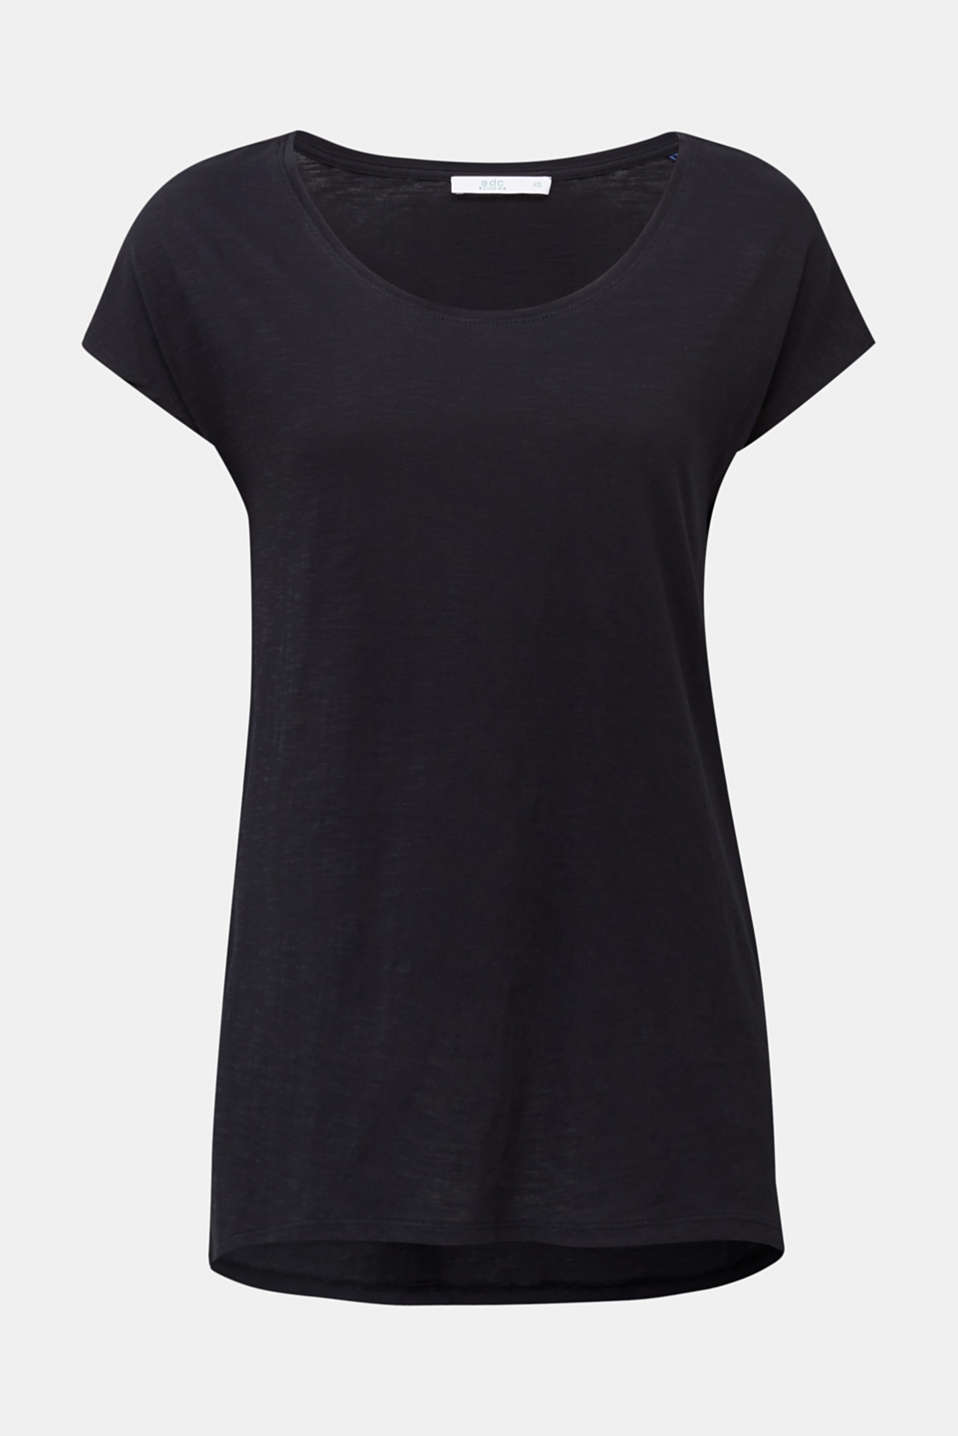 Slub top with high-low hem, 100% cotton, BLACK, detail image number 5